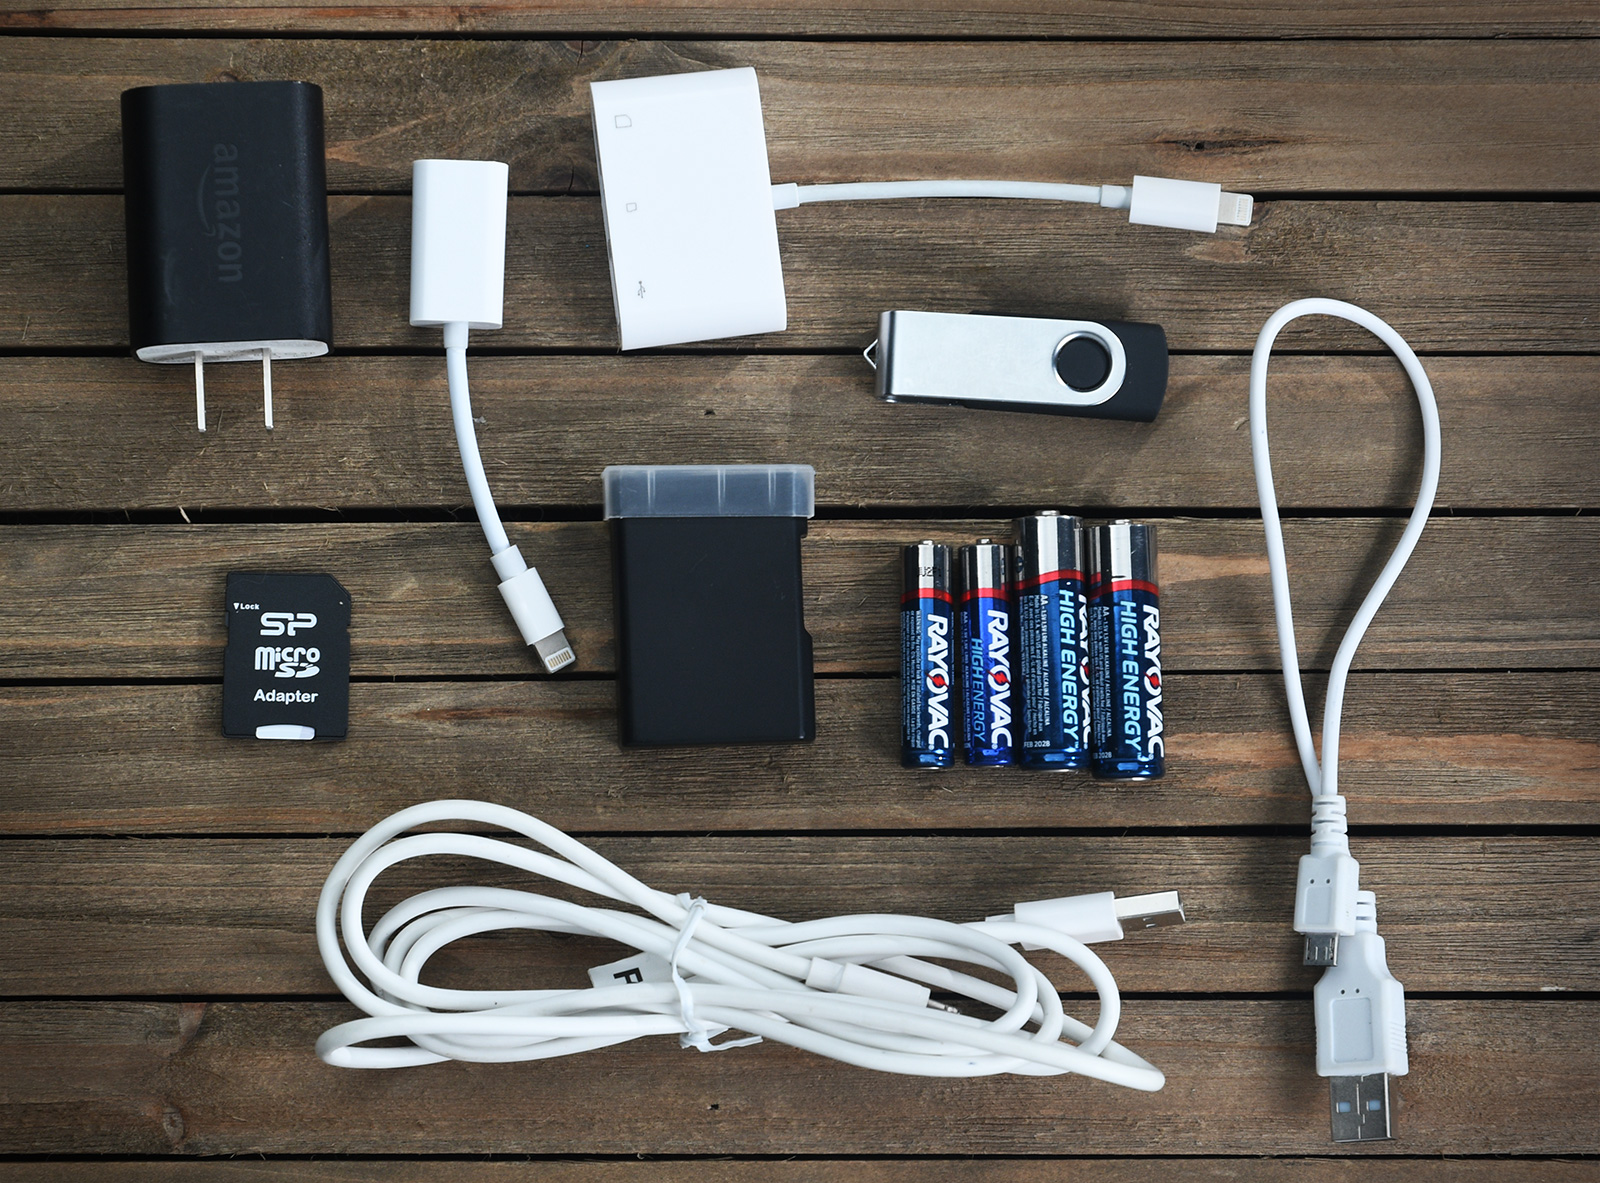 Everyday cords, cables and batteries